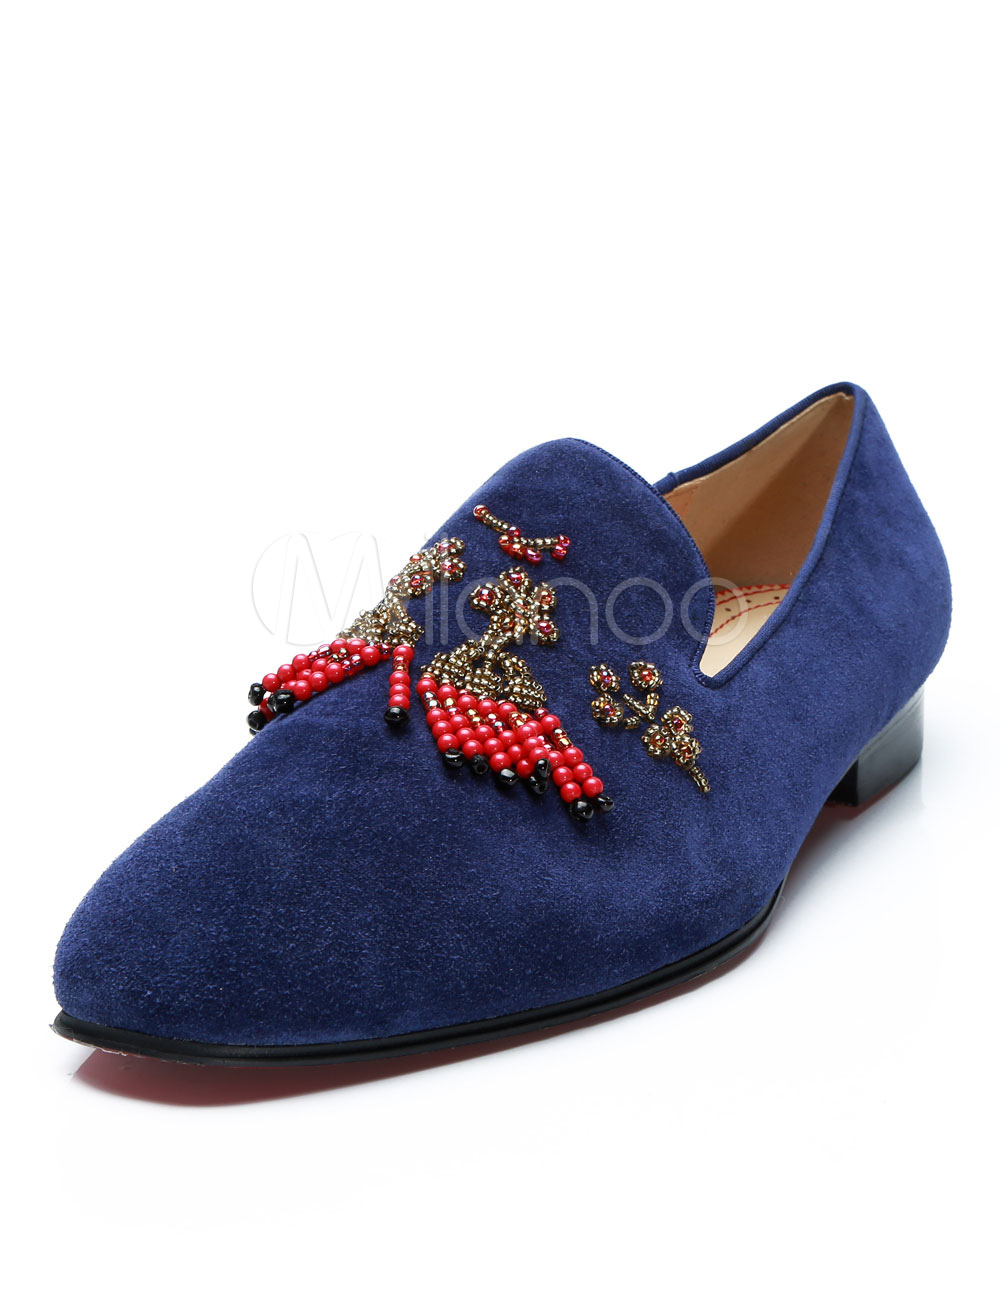 Buy Blue Men Loafers Suede Leather Round Toe Beaded Slip On Shoes Party Shoes for $103.49 in Milanoo store